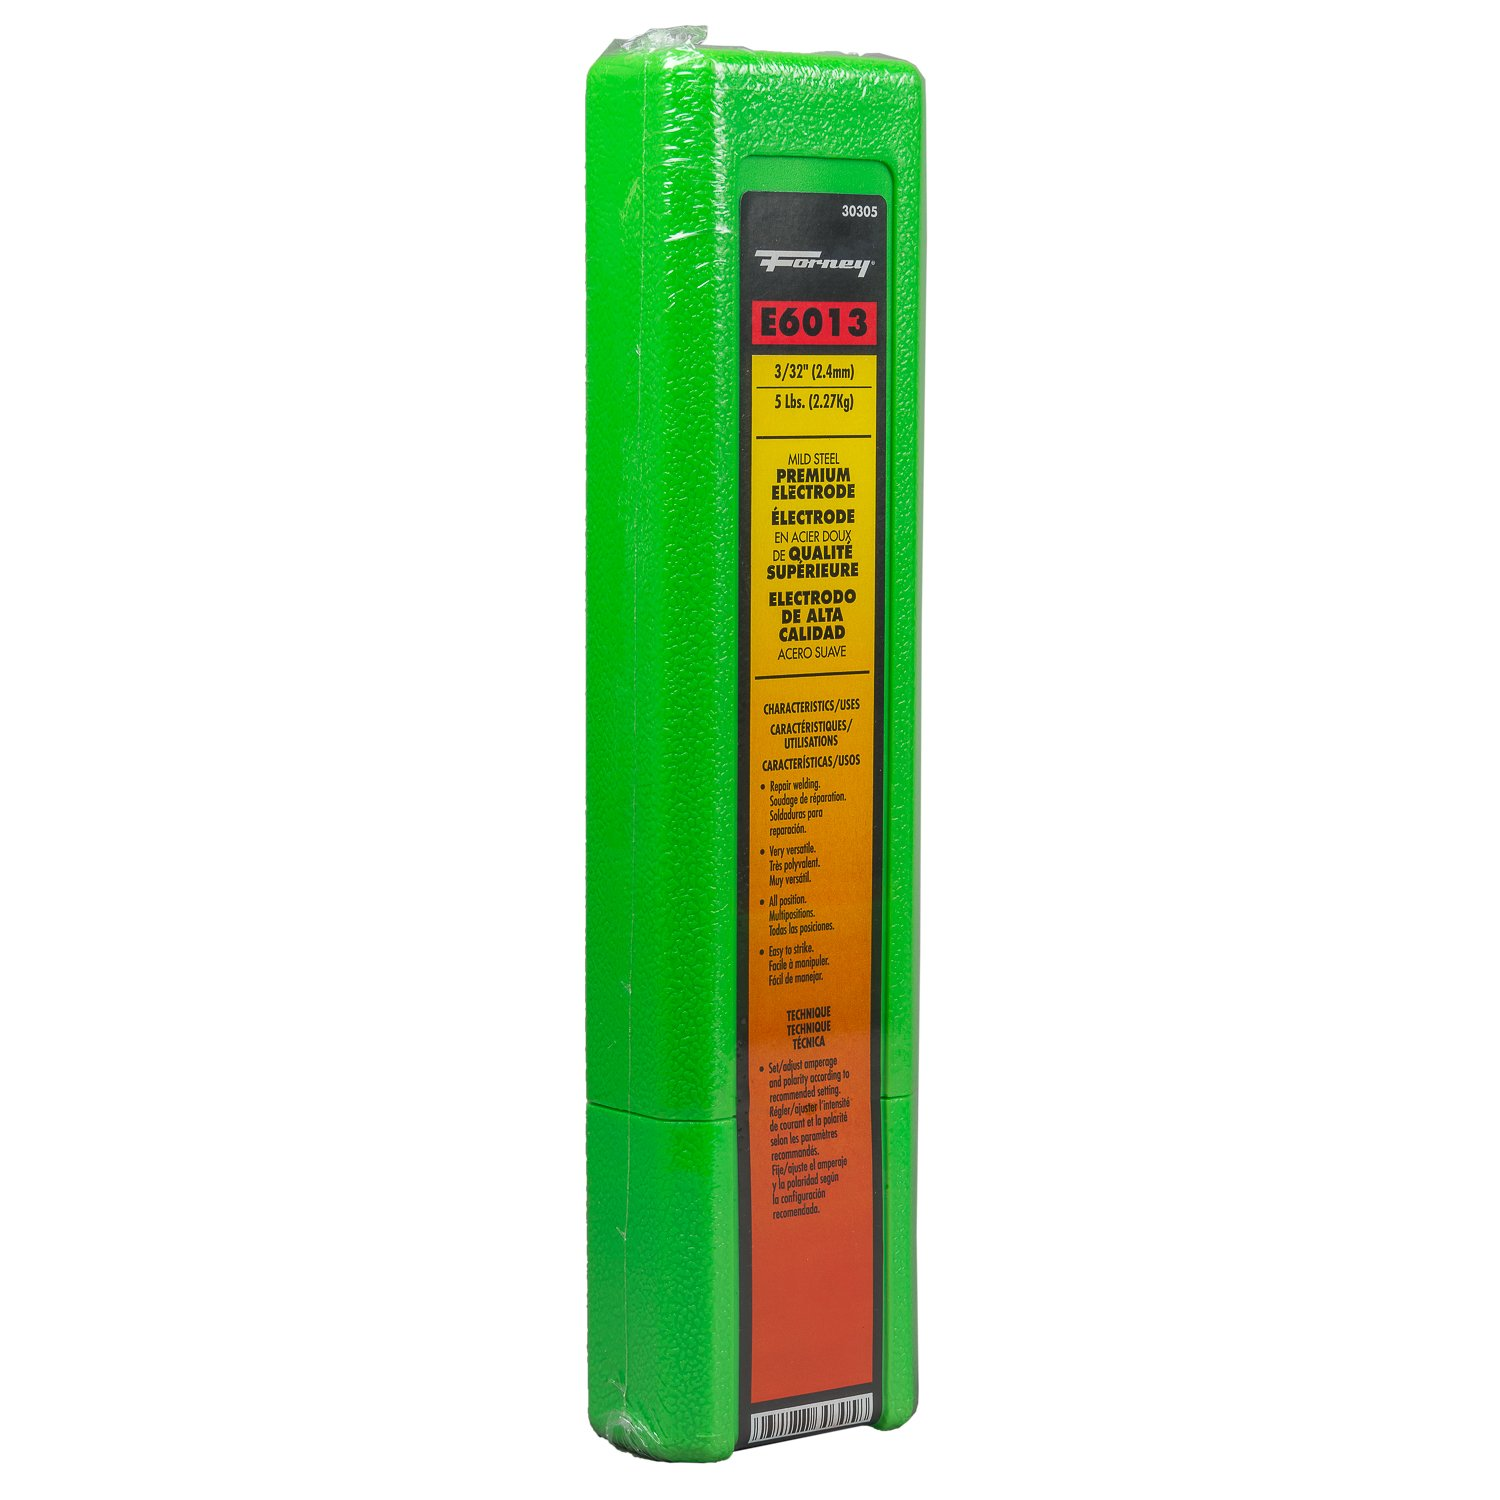 Forney 30301 E6013 Welding Rod, 3/32-Inch, 1-Pound product